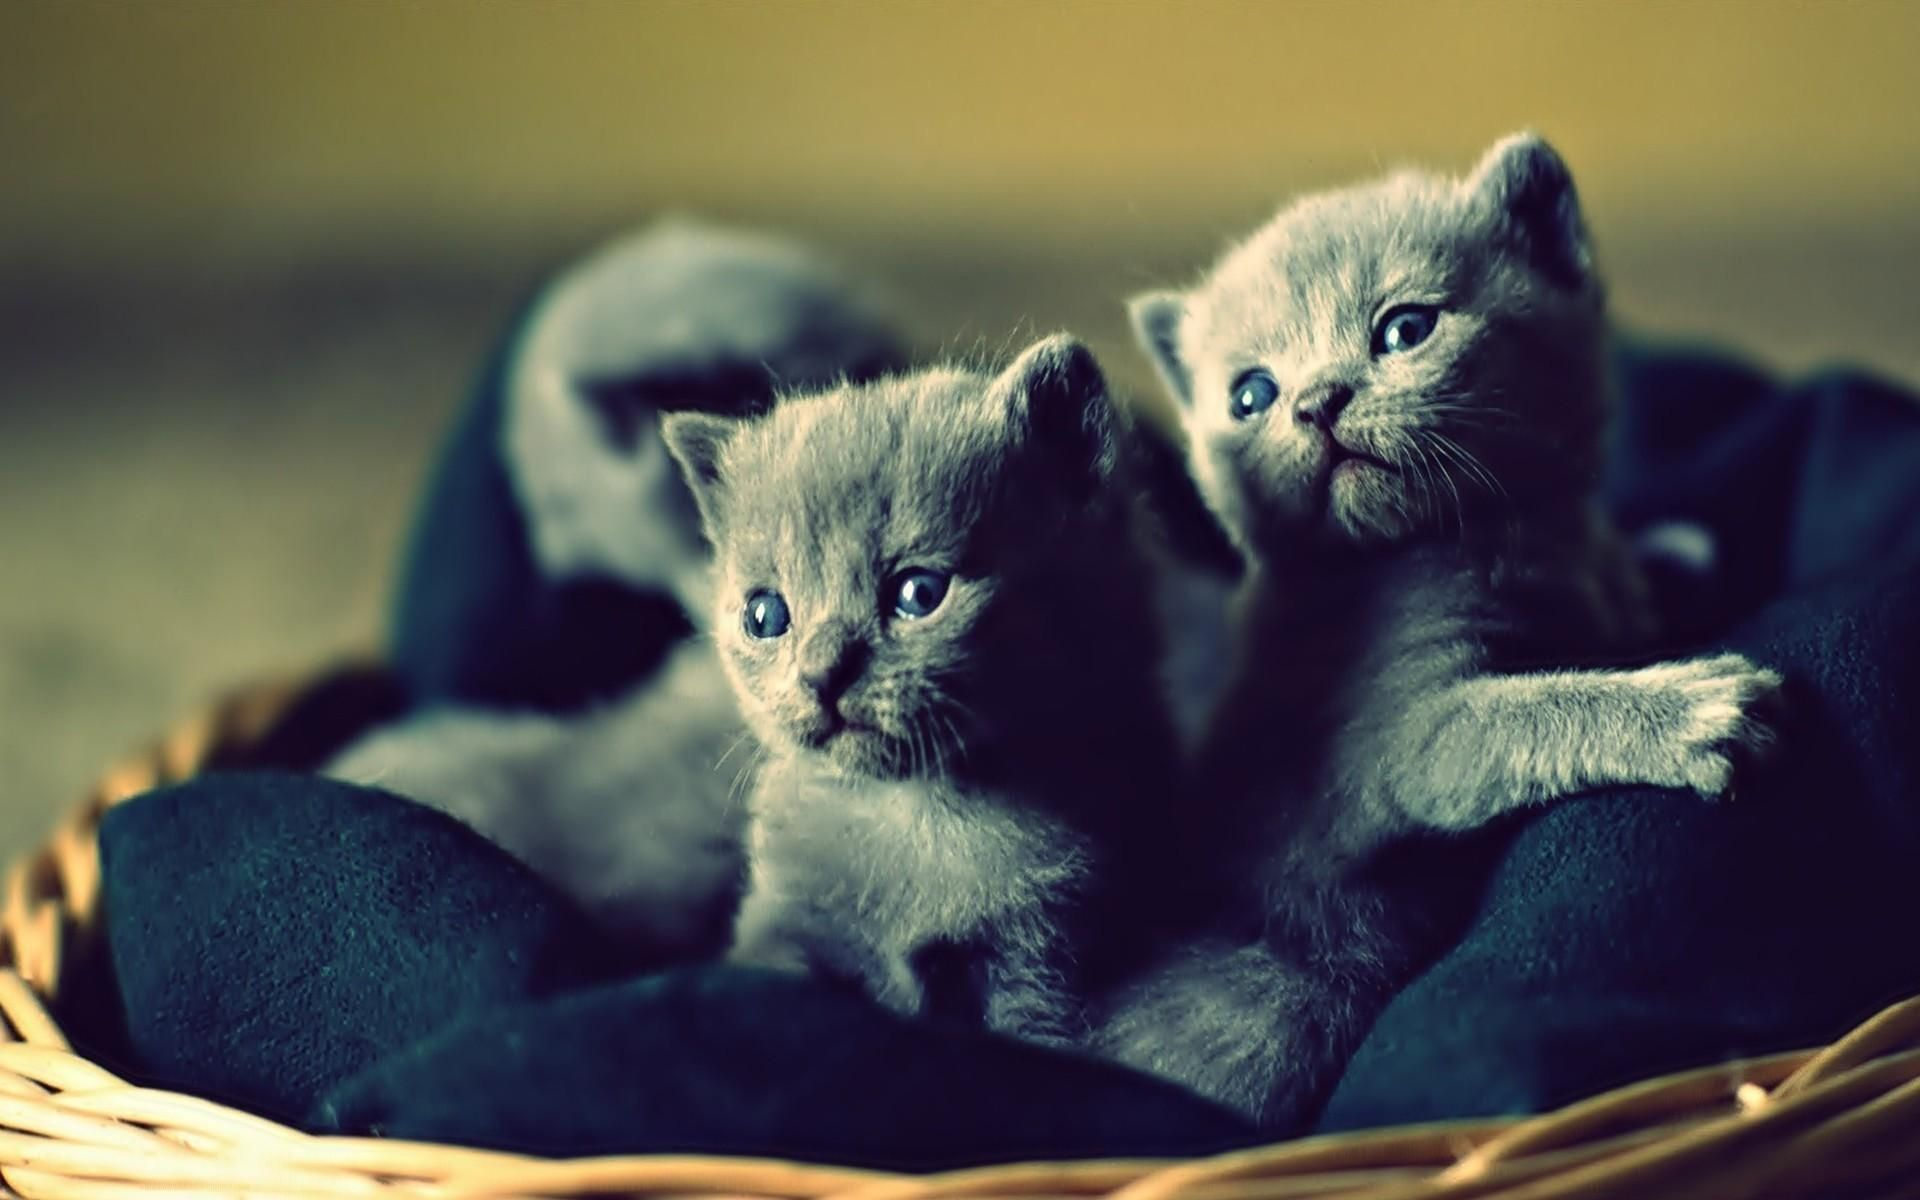 Cat Baby Animals Kittens Hd Wallpapers Desktop Backgrounds Mobile Wallpapers 1920x1200 26461 Baby Animals Cute Animal Videos Kittens